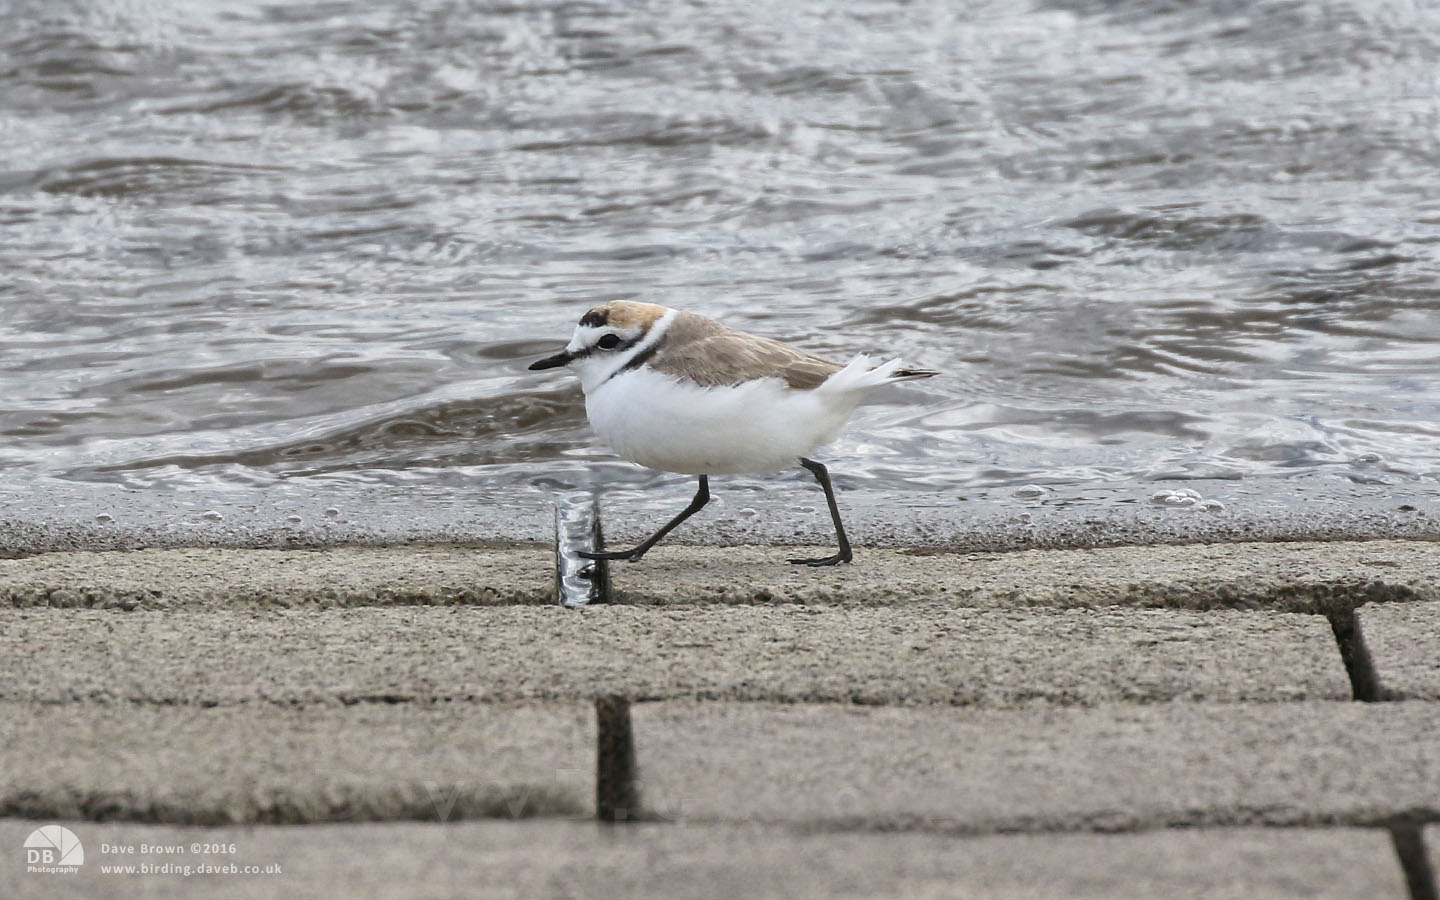 Kentish Plover at Audenshaw Reservoir, 26th April 2016